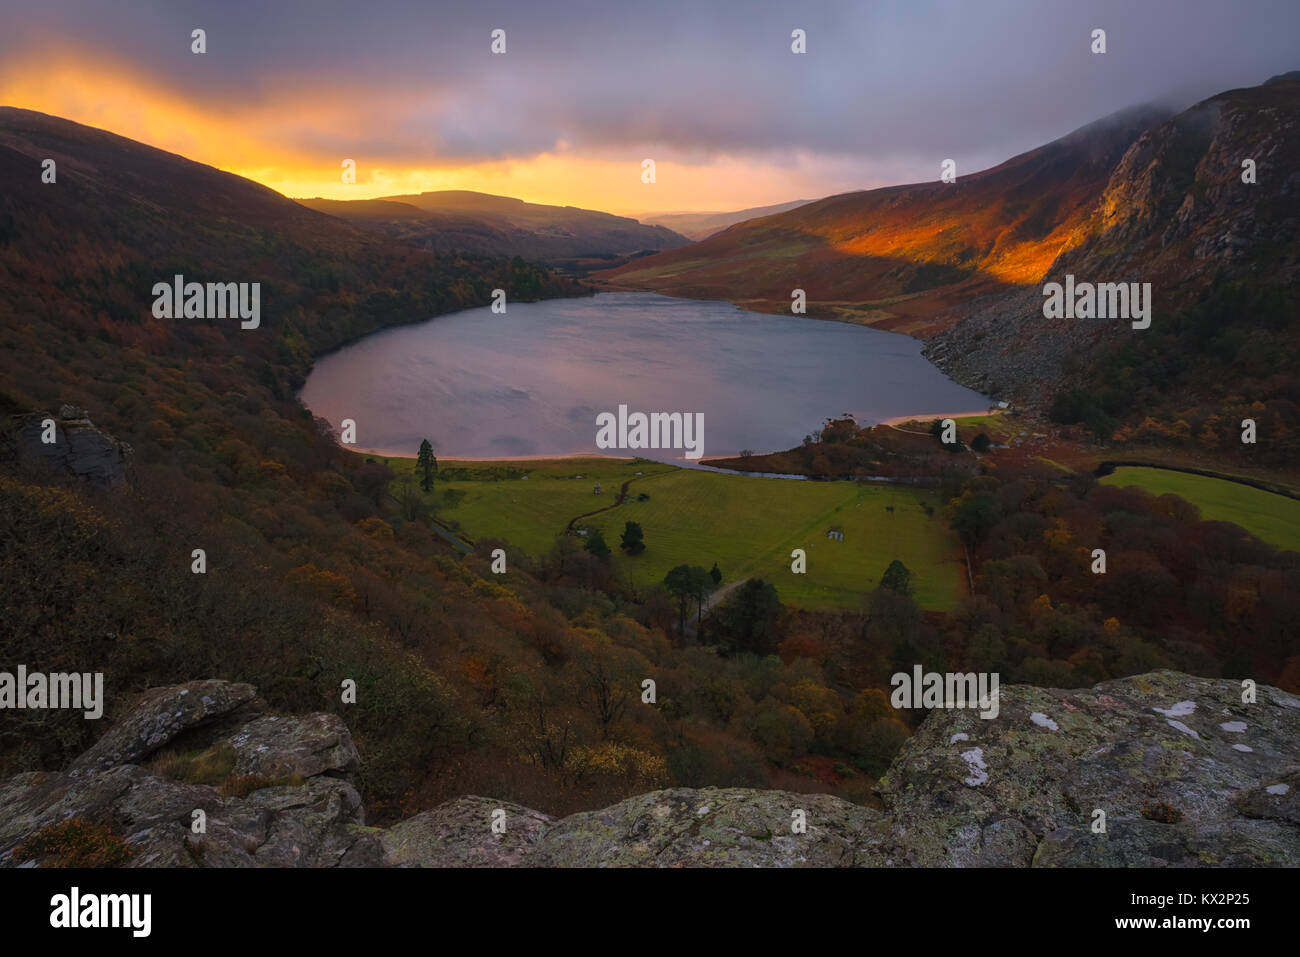 Lough Tay lake in Wicklow Mountains - Ireland - Stock Image